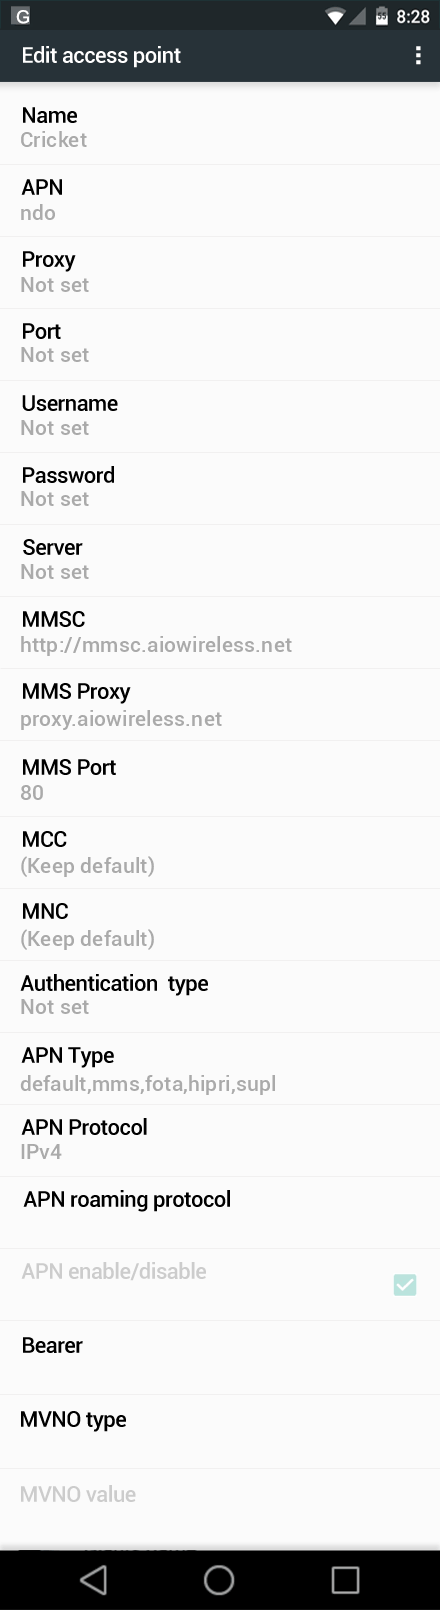 Cricket Samsung Galaxy S7 Internet And Mms Apn Settings